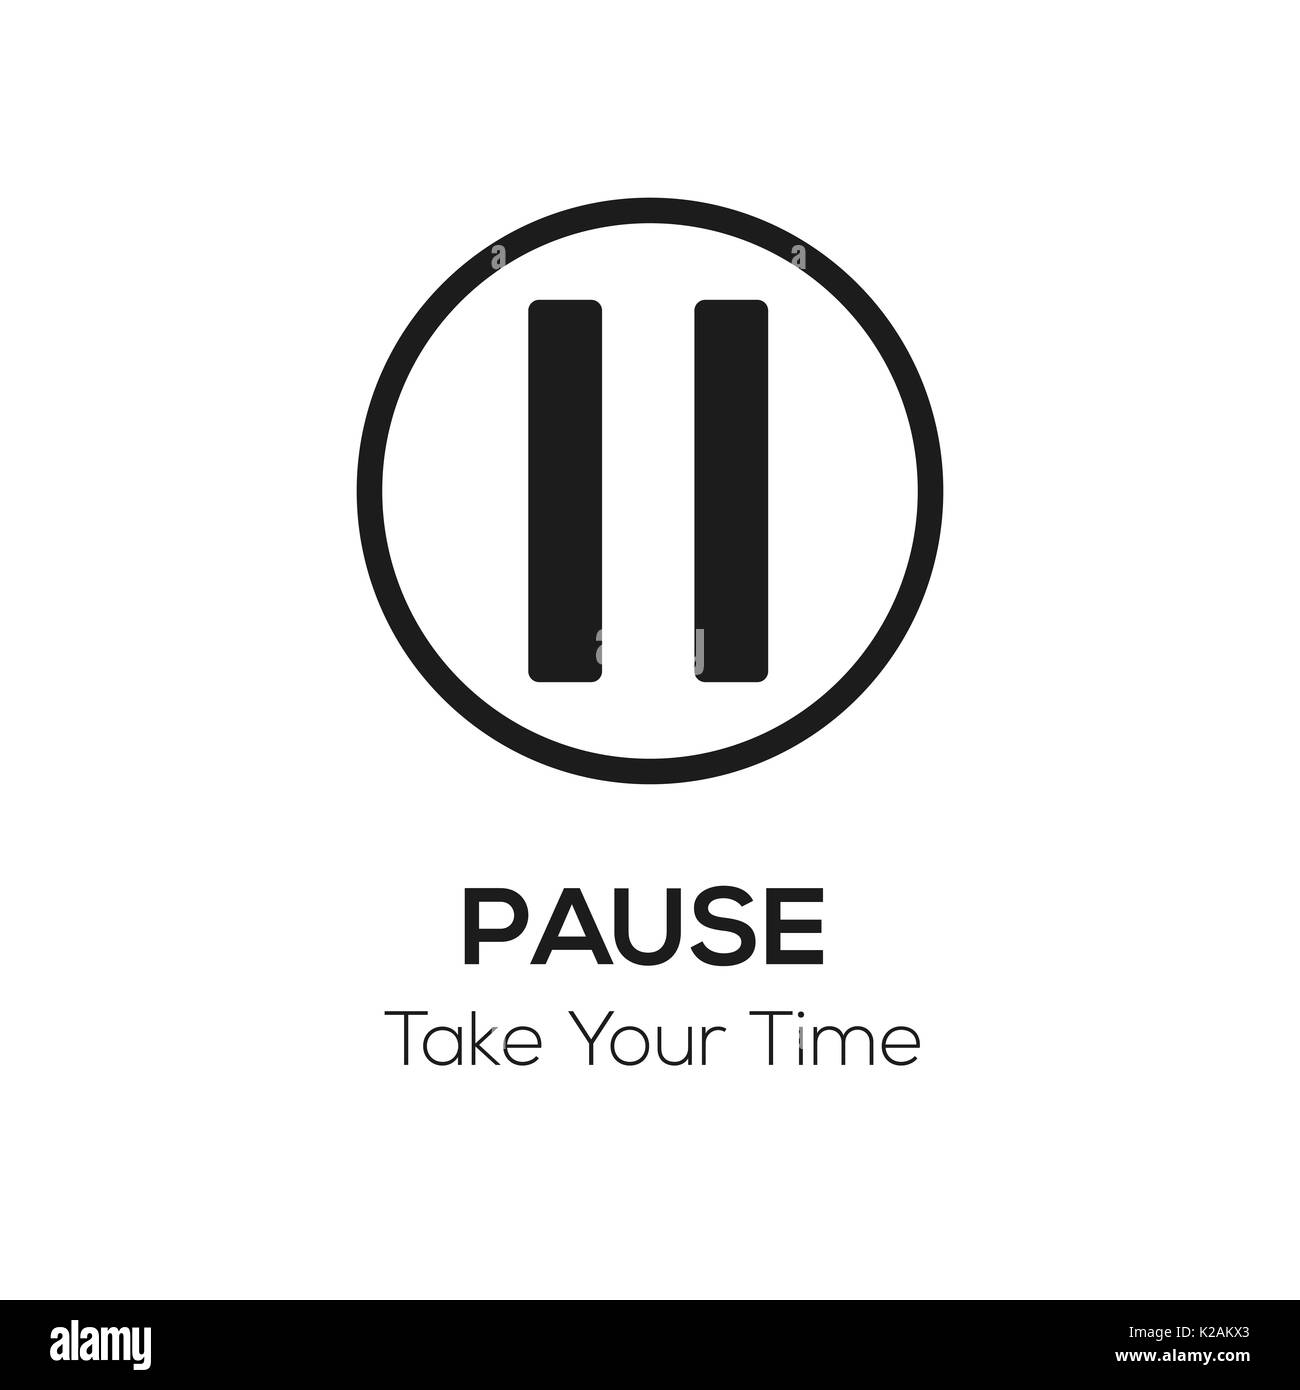 Pause button illustration with words Take your time, get away from it all concept, black and white visual - Stock Image